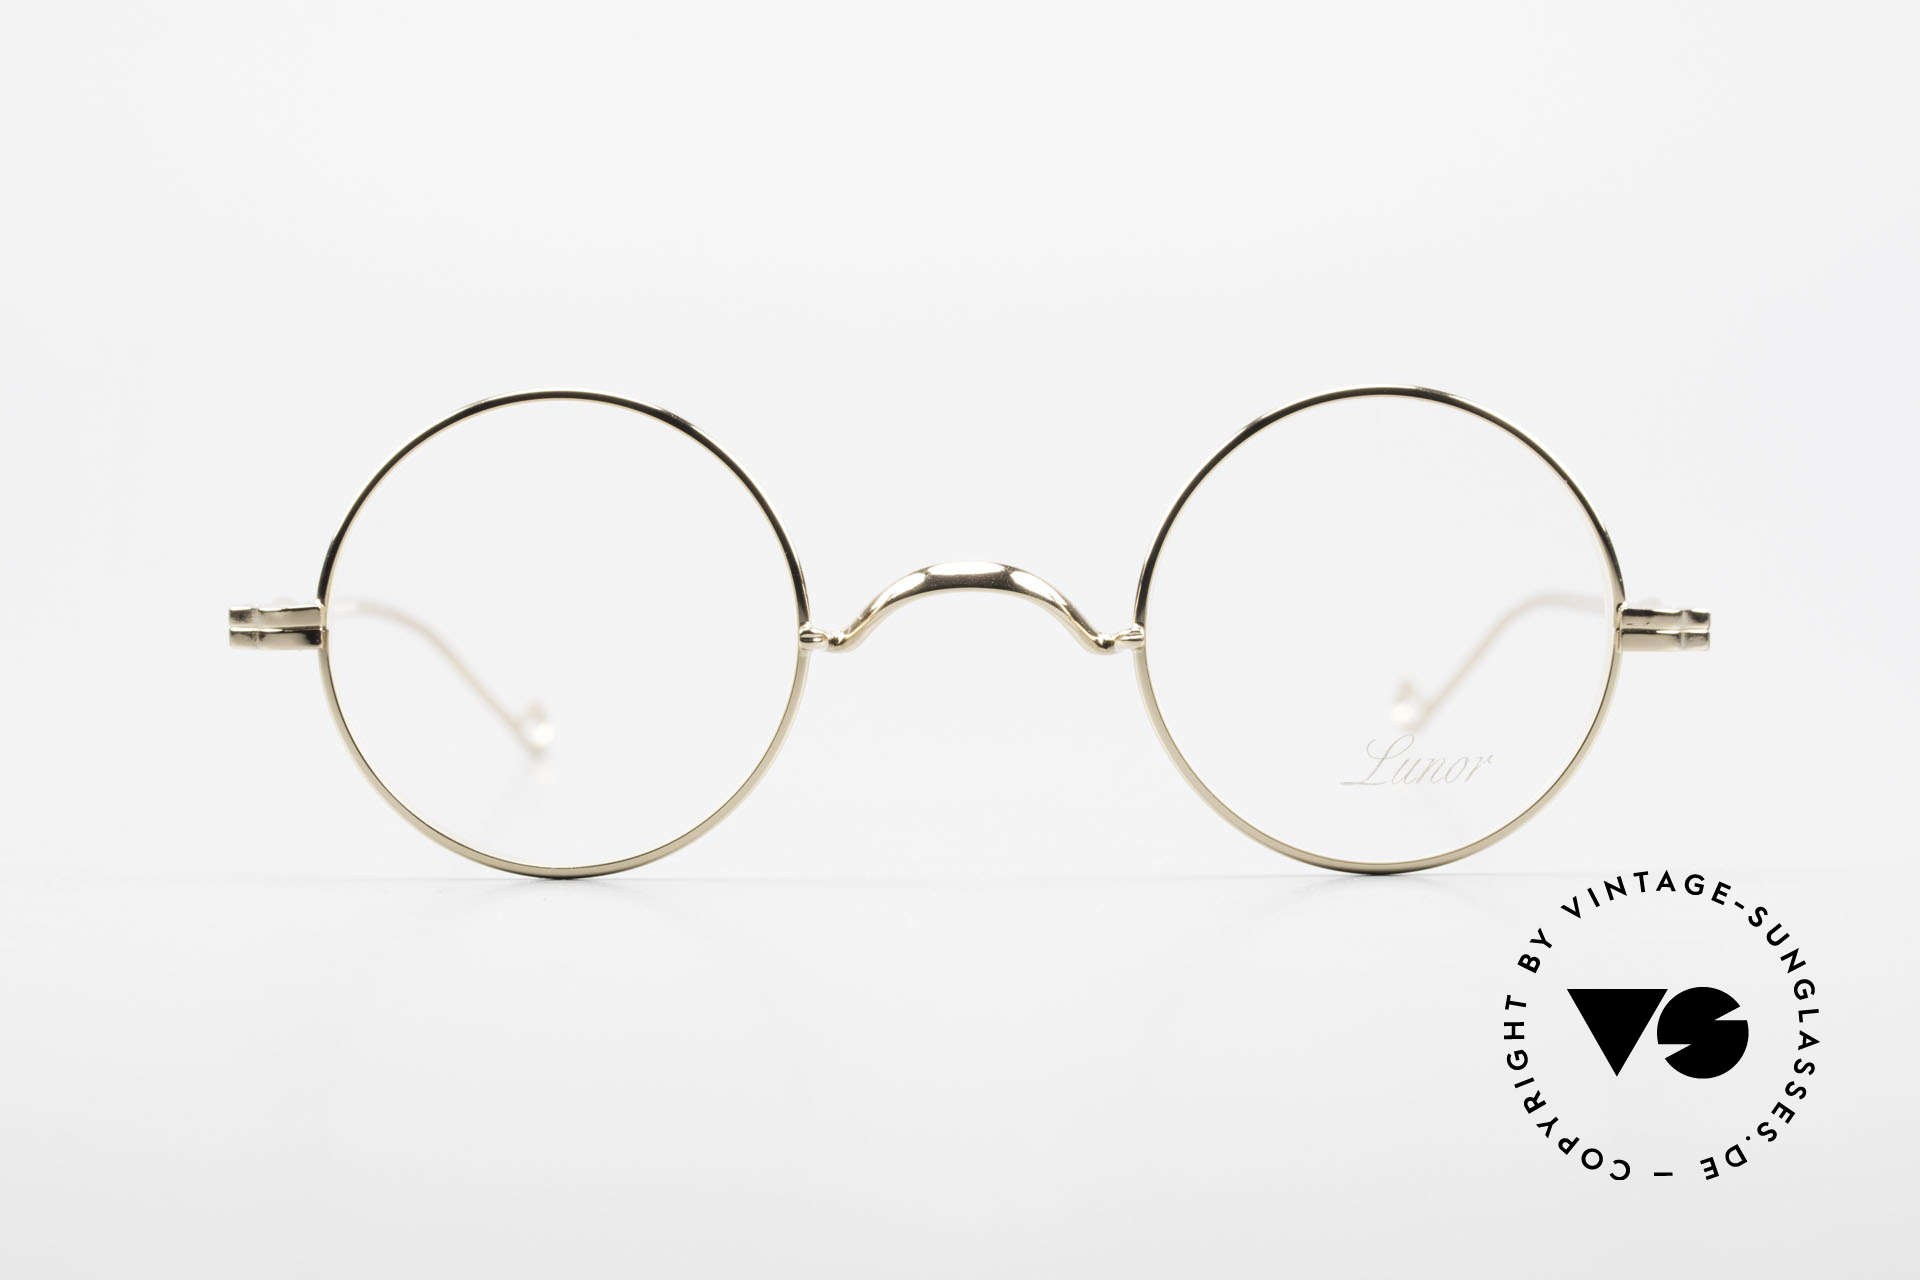 Lunor II 12 Small Round Gold Glasses, full metal rim frame coated with a protection lacquer, Made for Men and Women